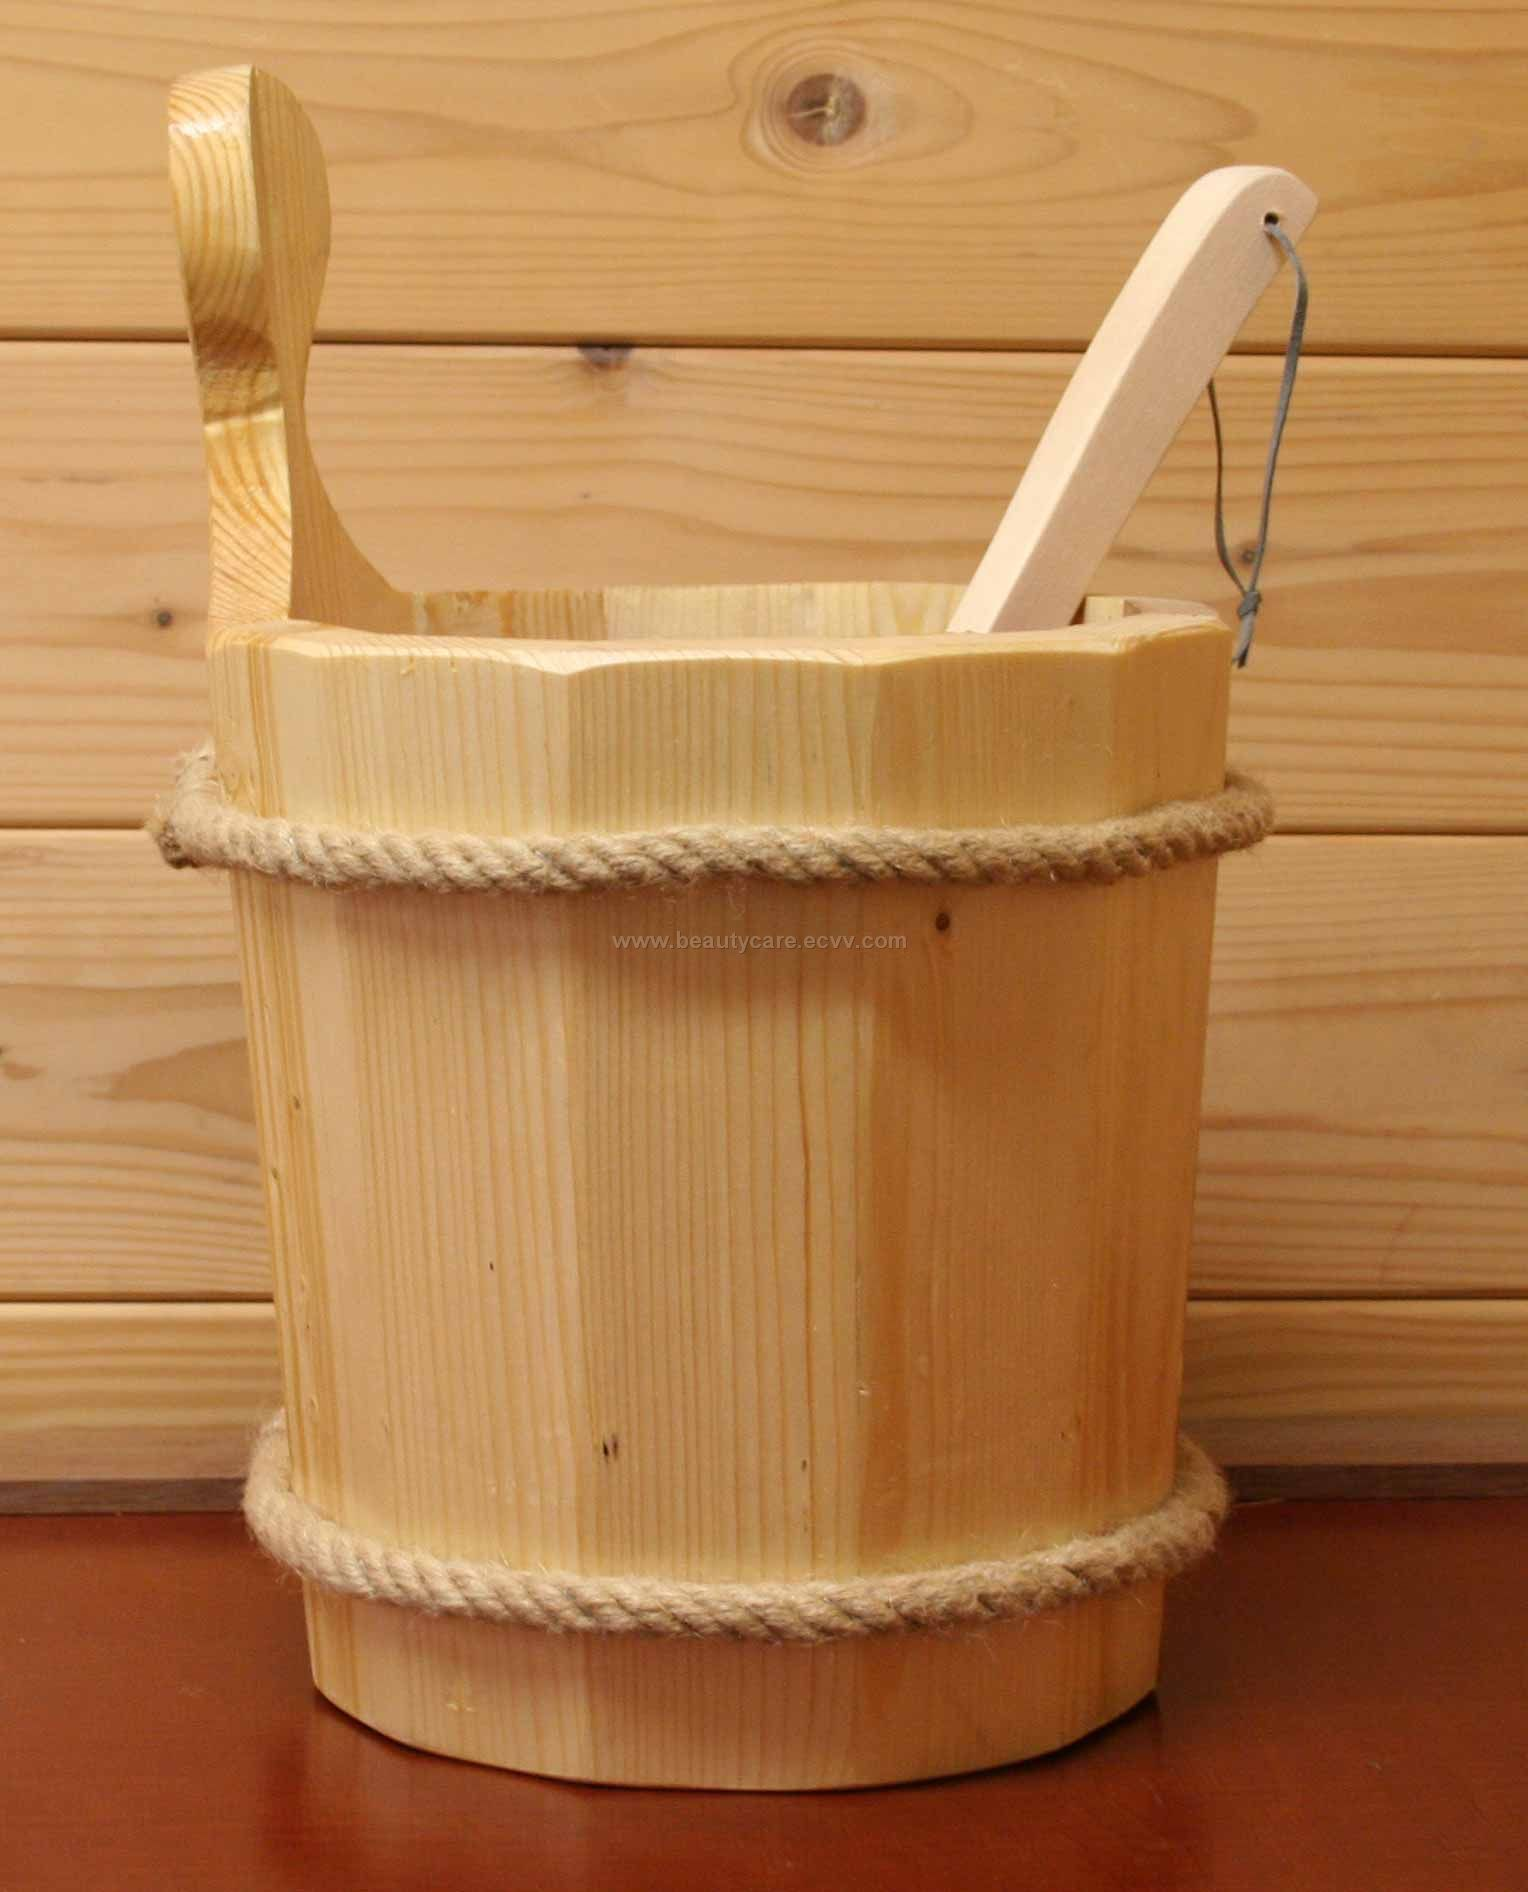 Wooden Bucket for Sauna purchasing, souring agent | ECVV.com ...